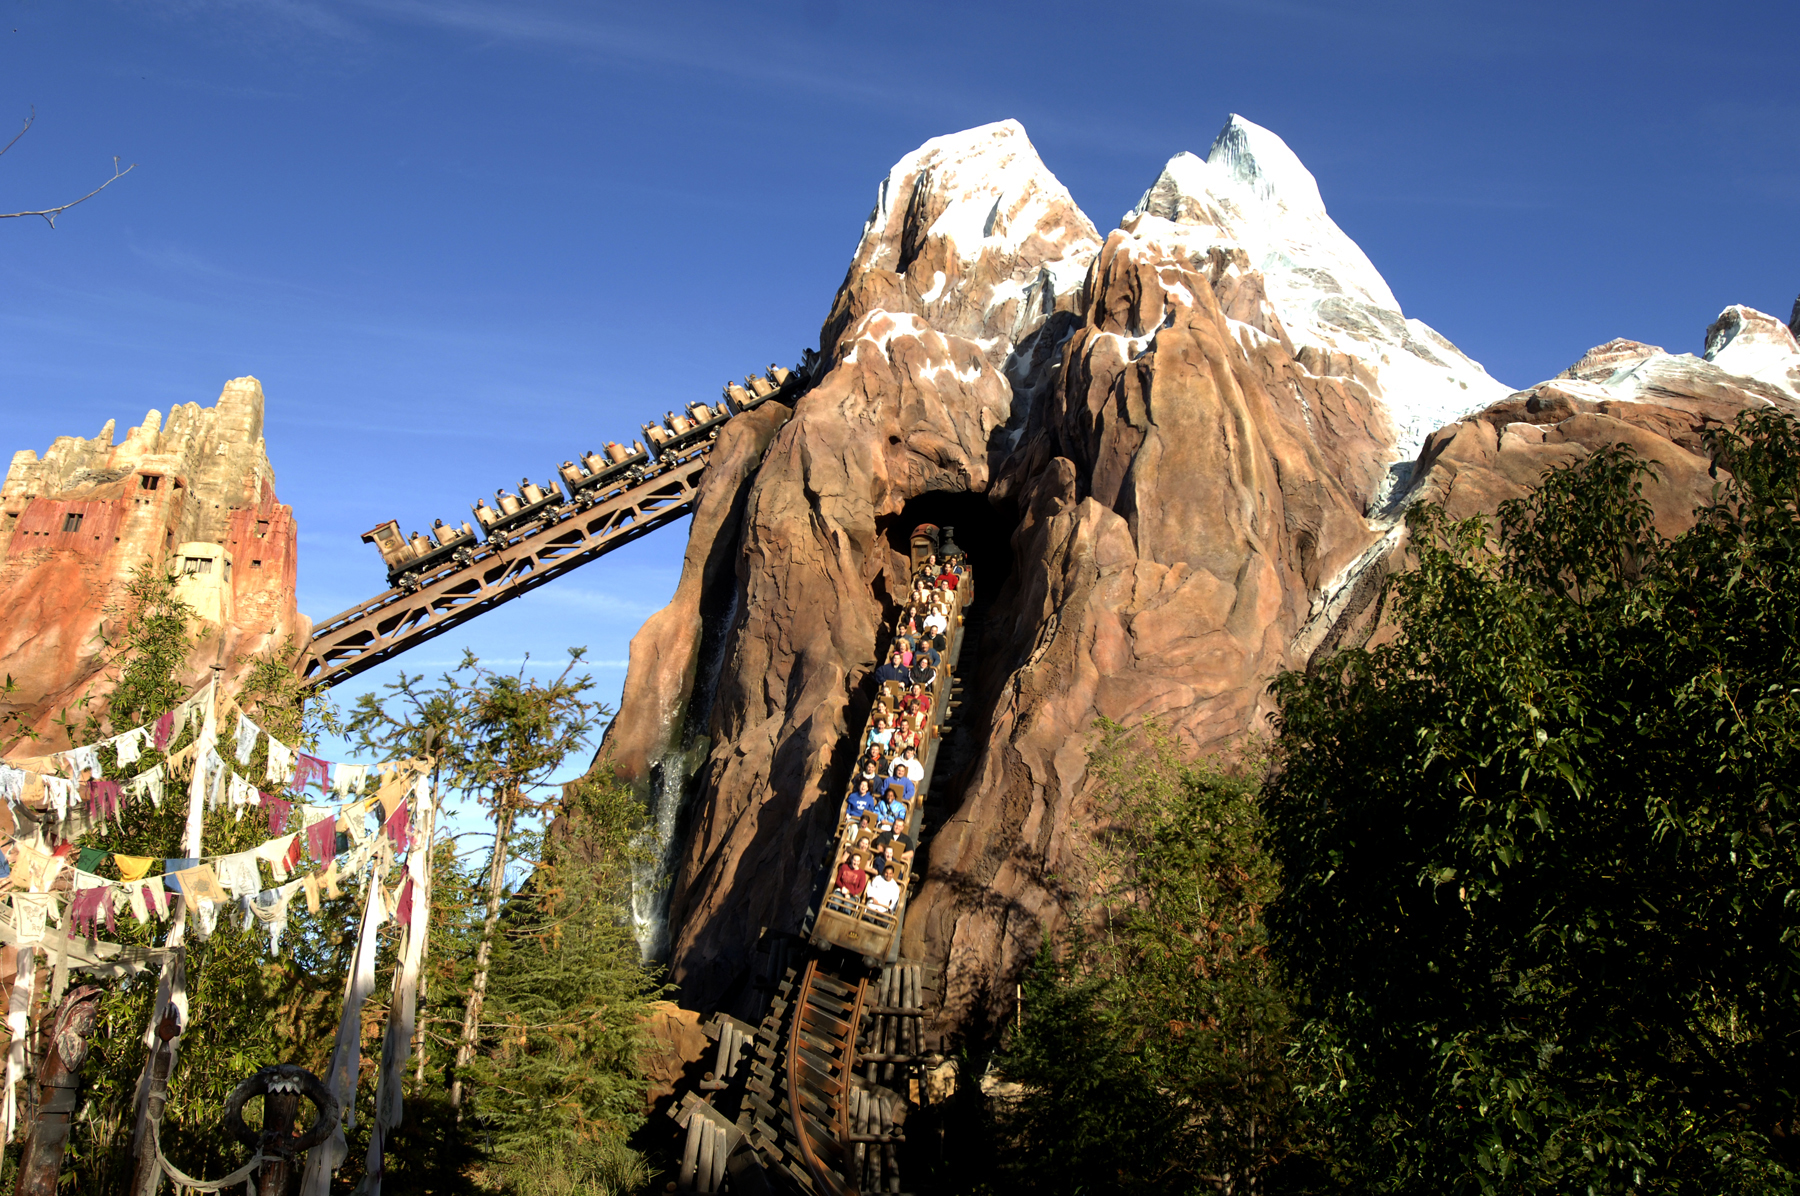 Expedition Everest News